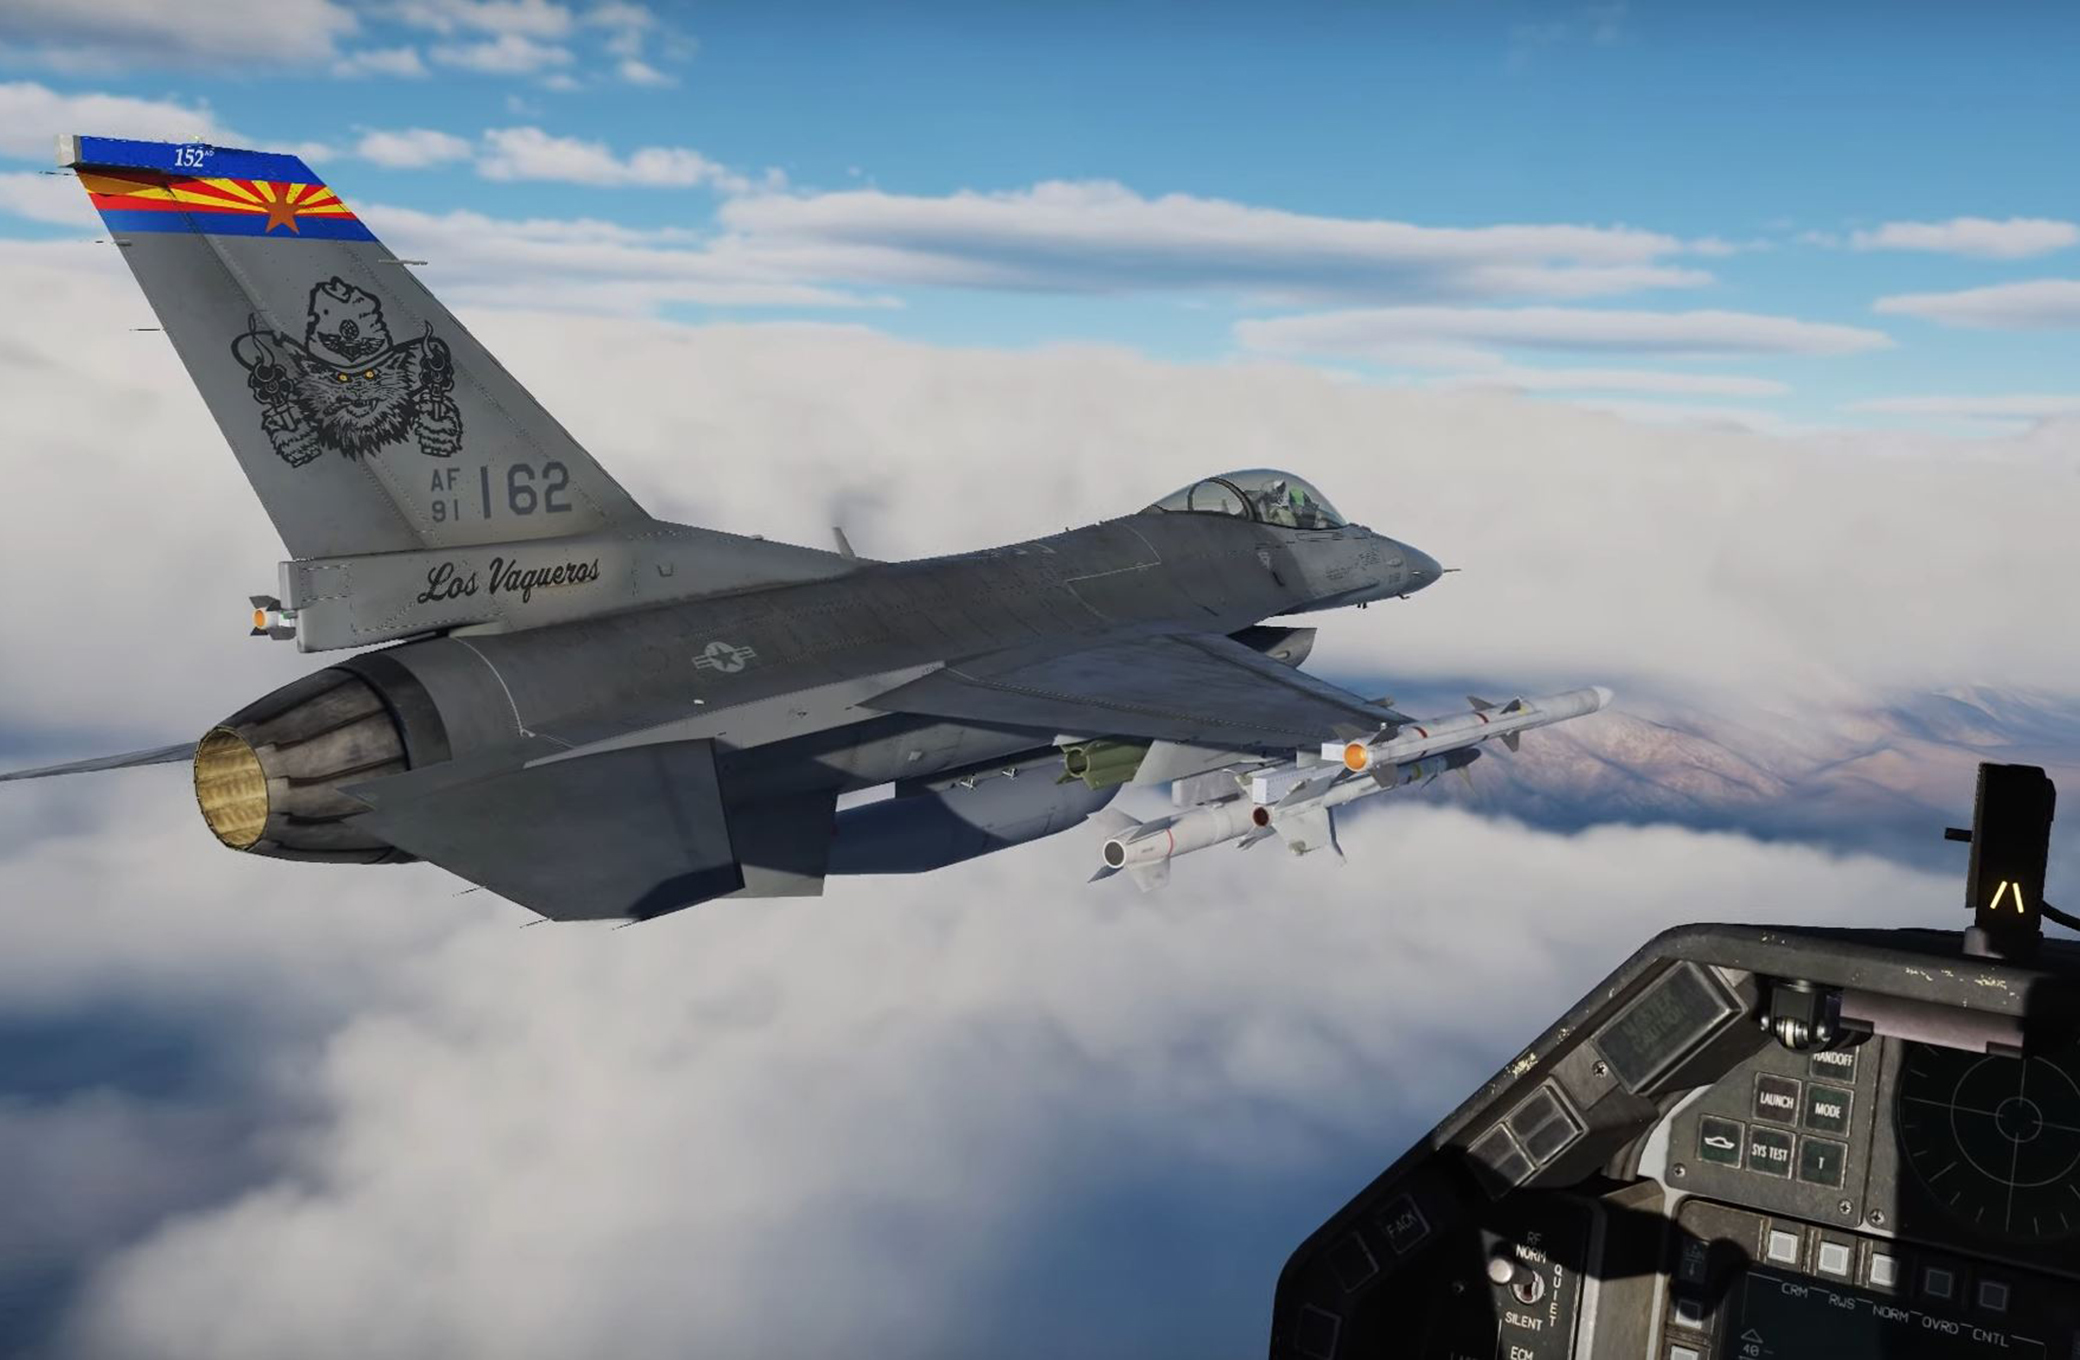 An F-16 in formation, viewed form inside the cockpit of the trailing edge of the formation.